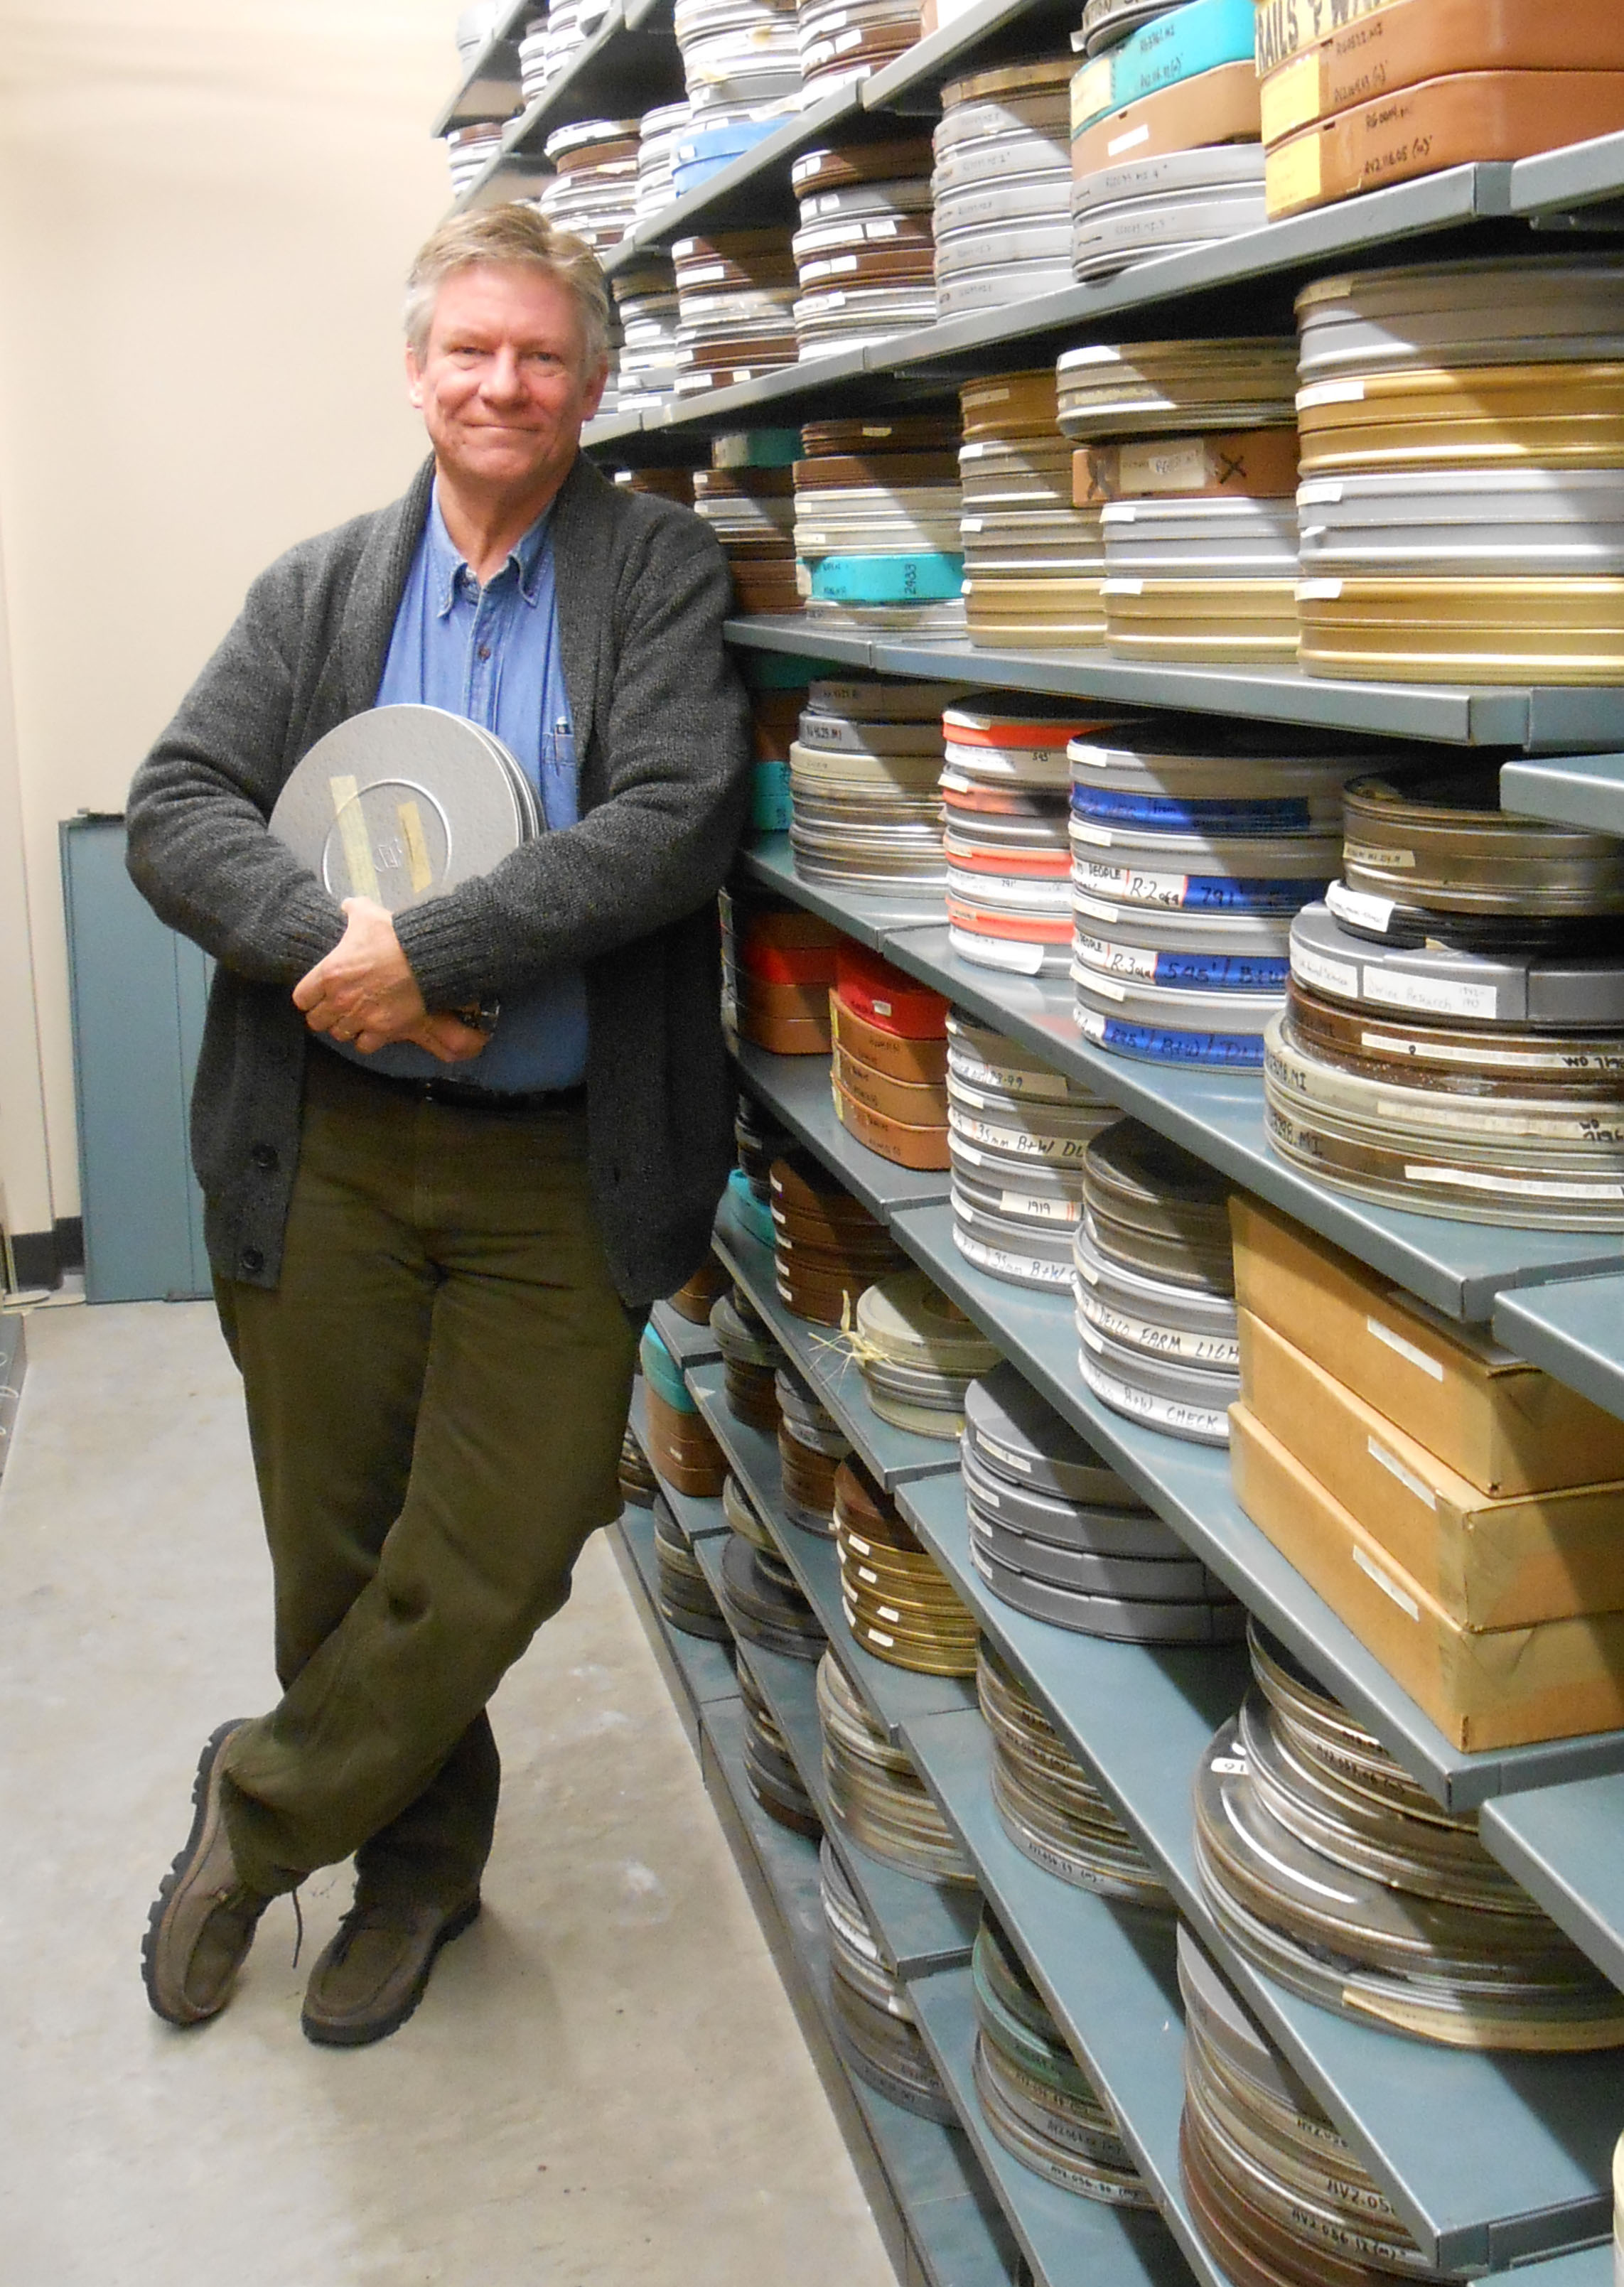 Paul Eisloeffel in AV stacks